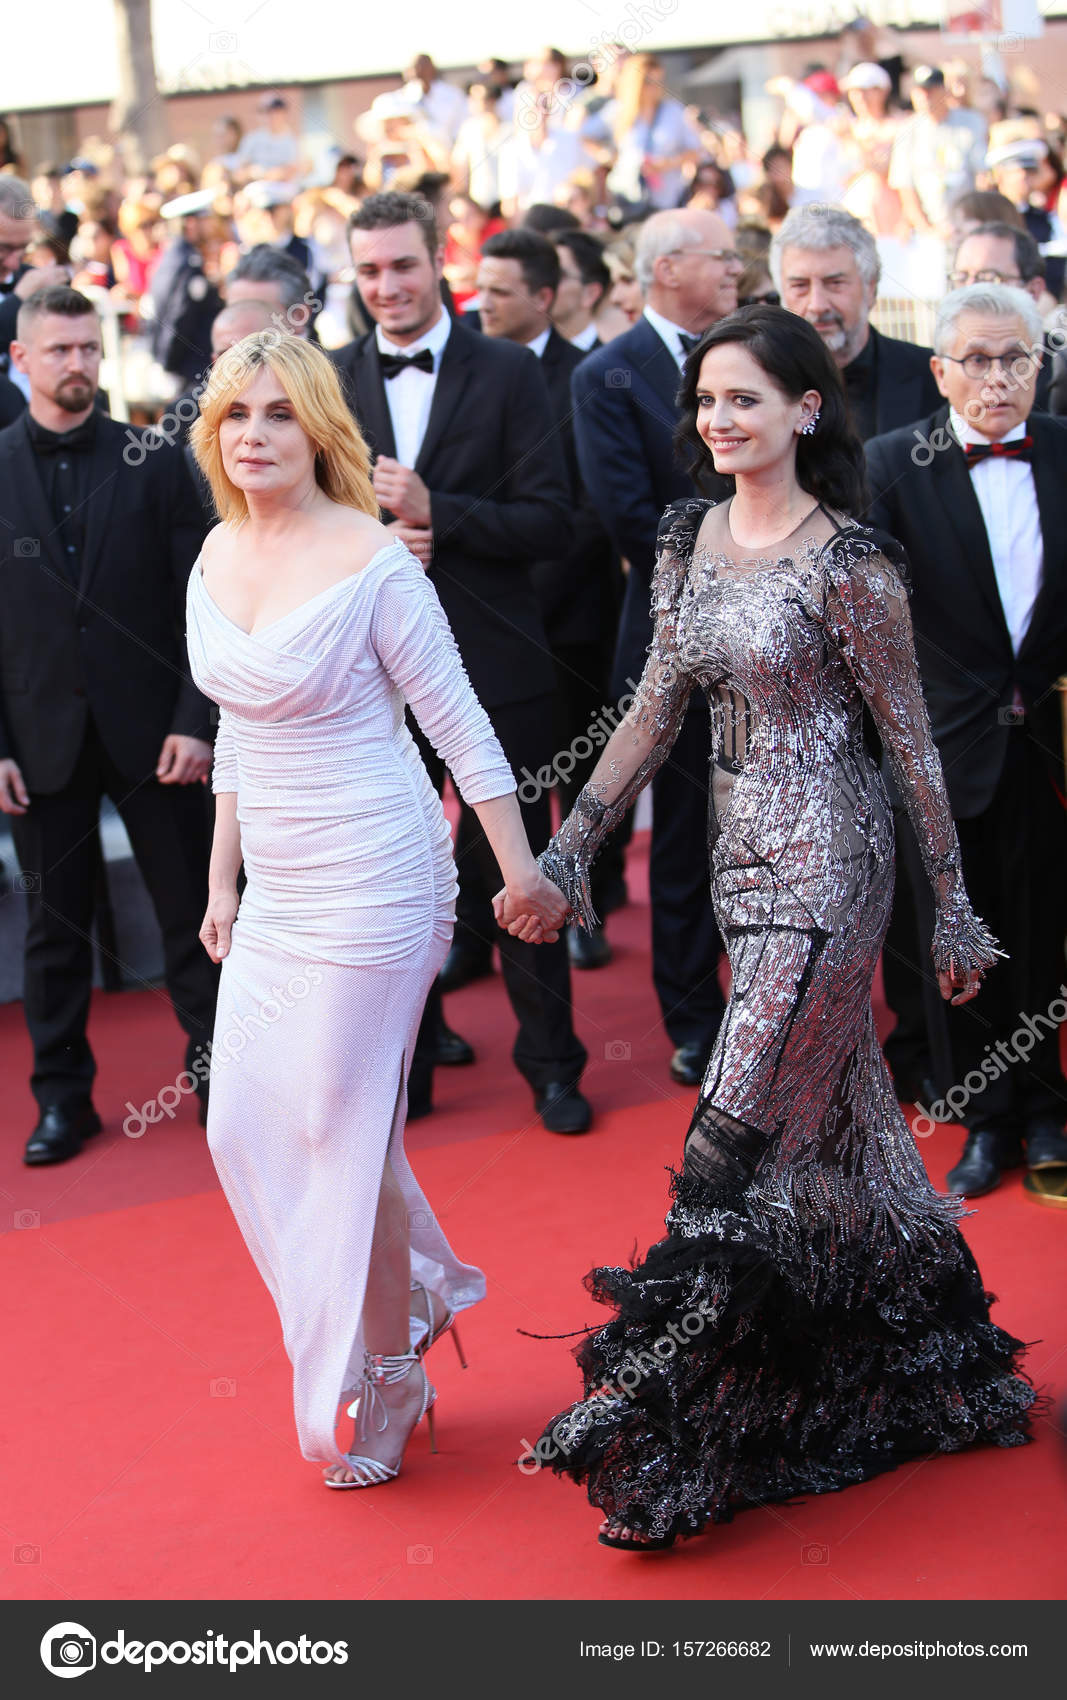 Actresses Eva Green and Emmanuelle Seigner attending Based On A True Story  at 70th Film Festival, Cannes, France, May 27, 2017 — Photo by  DenisMakarenko